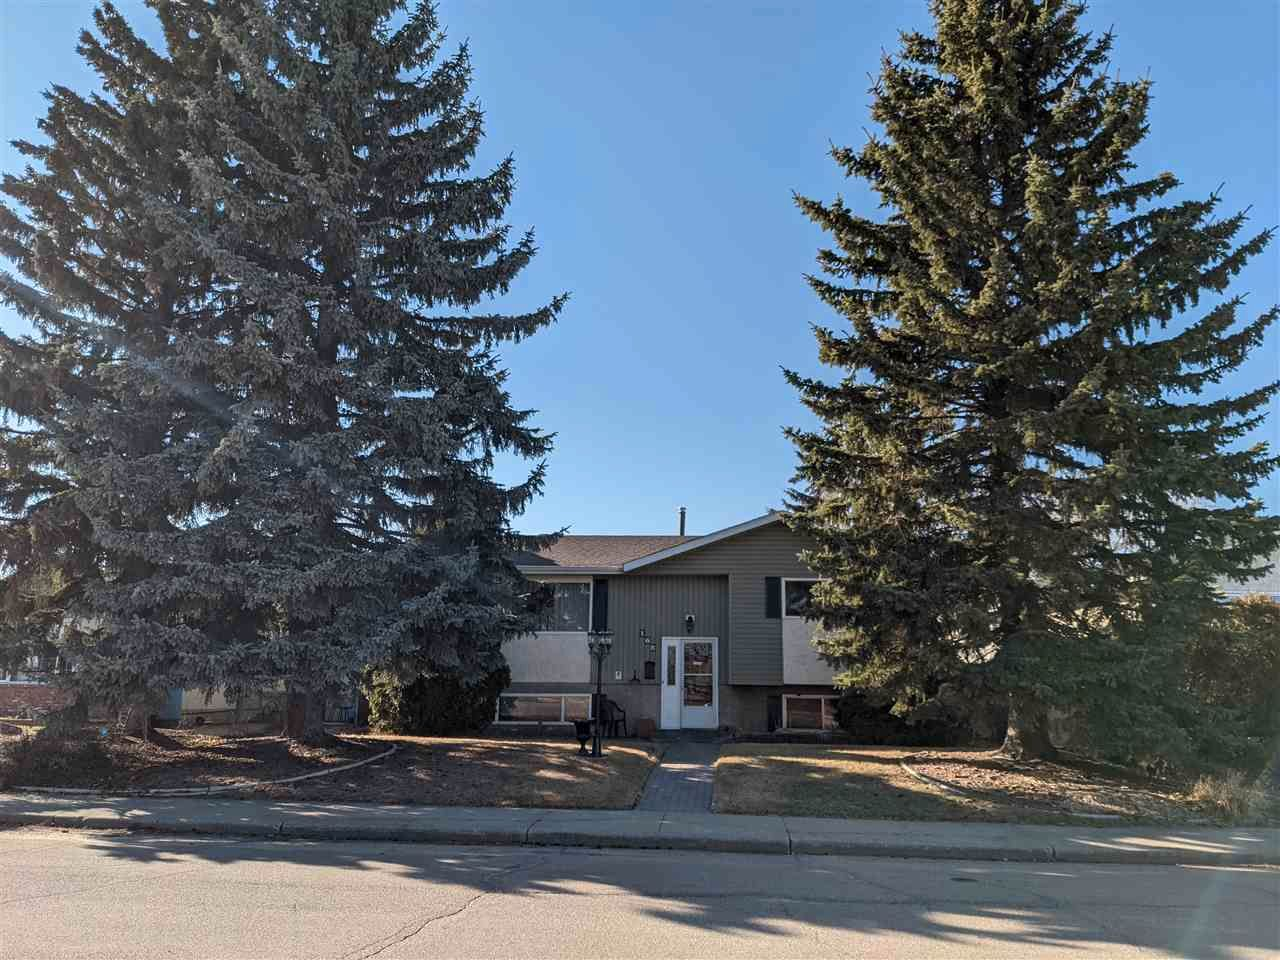 Main Photo: 168 CLAREVIEW Road in Edmonton: Zone 35 House for sale : MLS®# E4238211